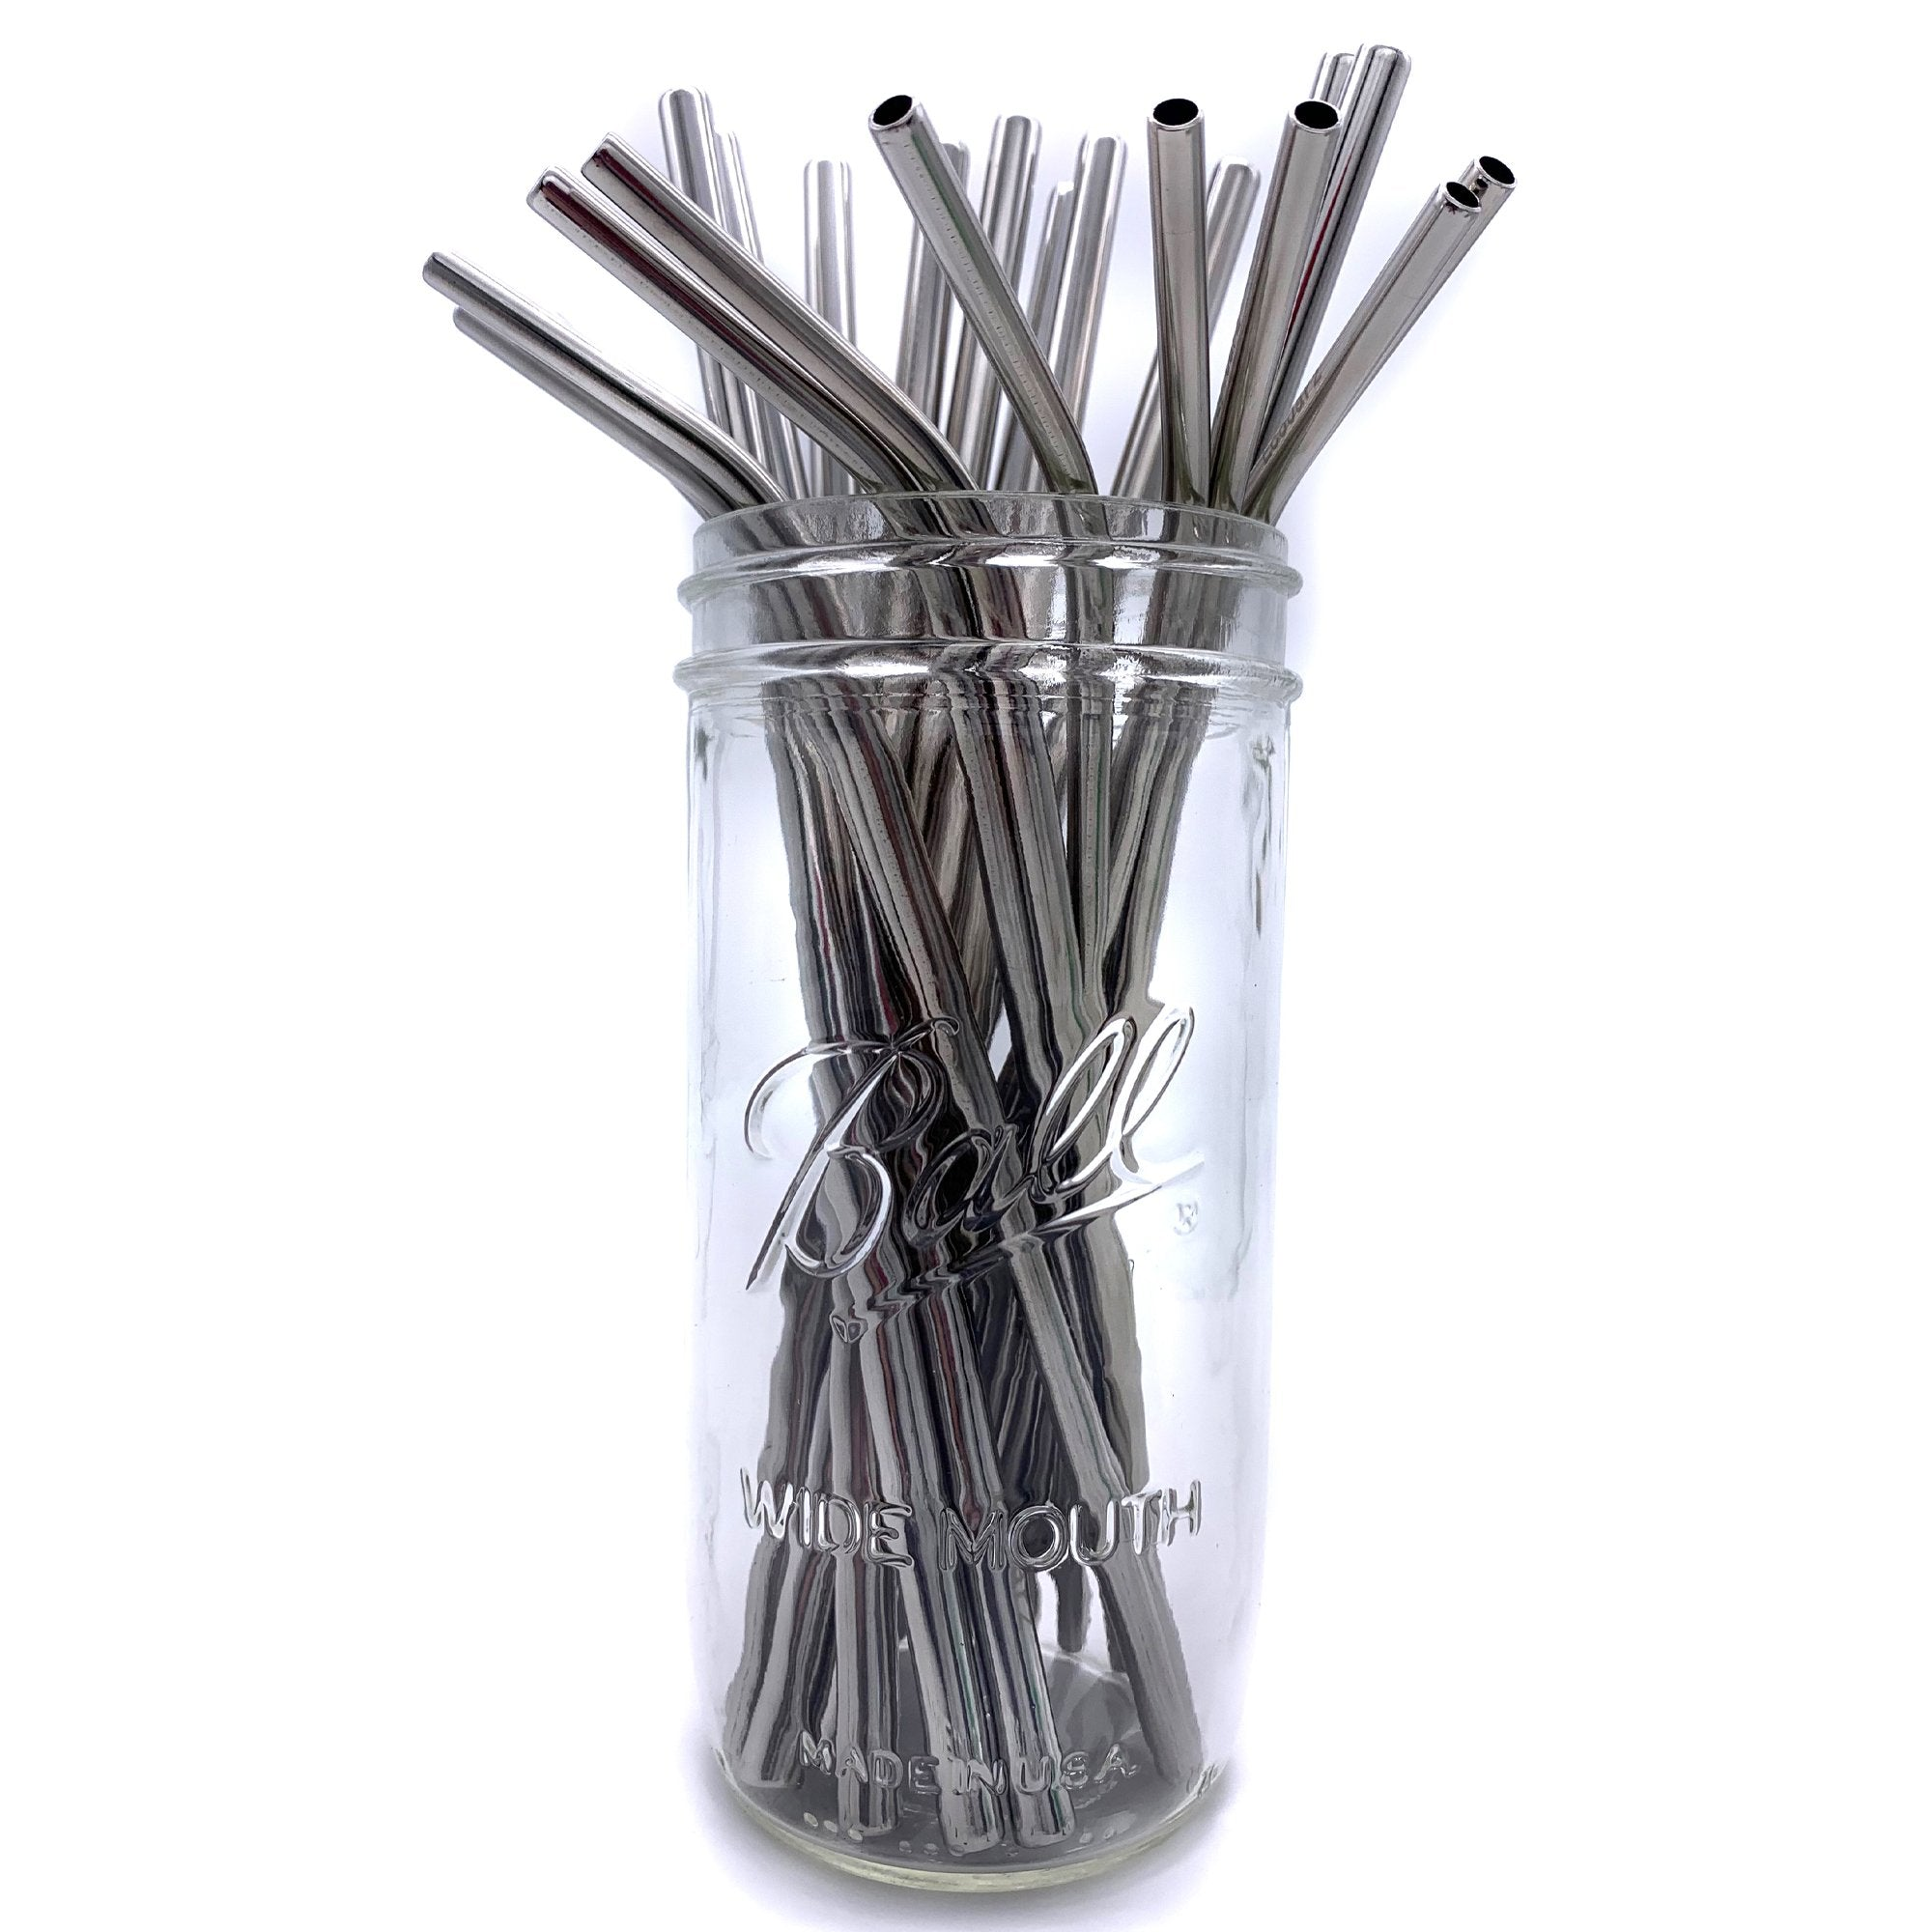 Reusable stainless steel straws in tall glass mason jar